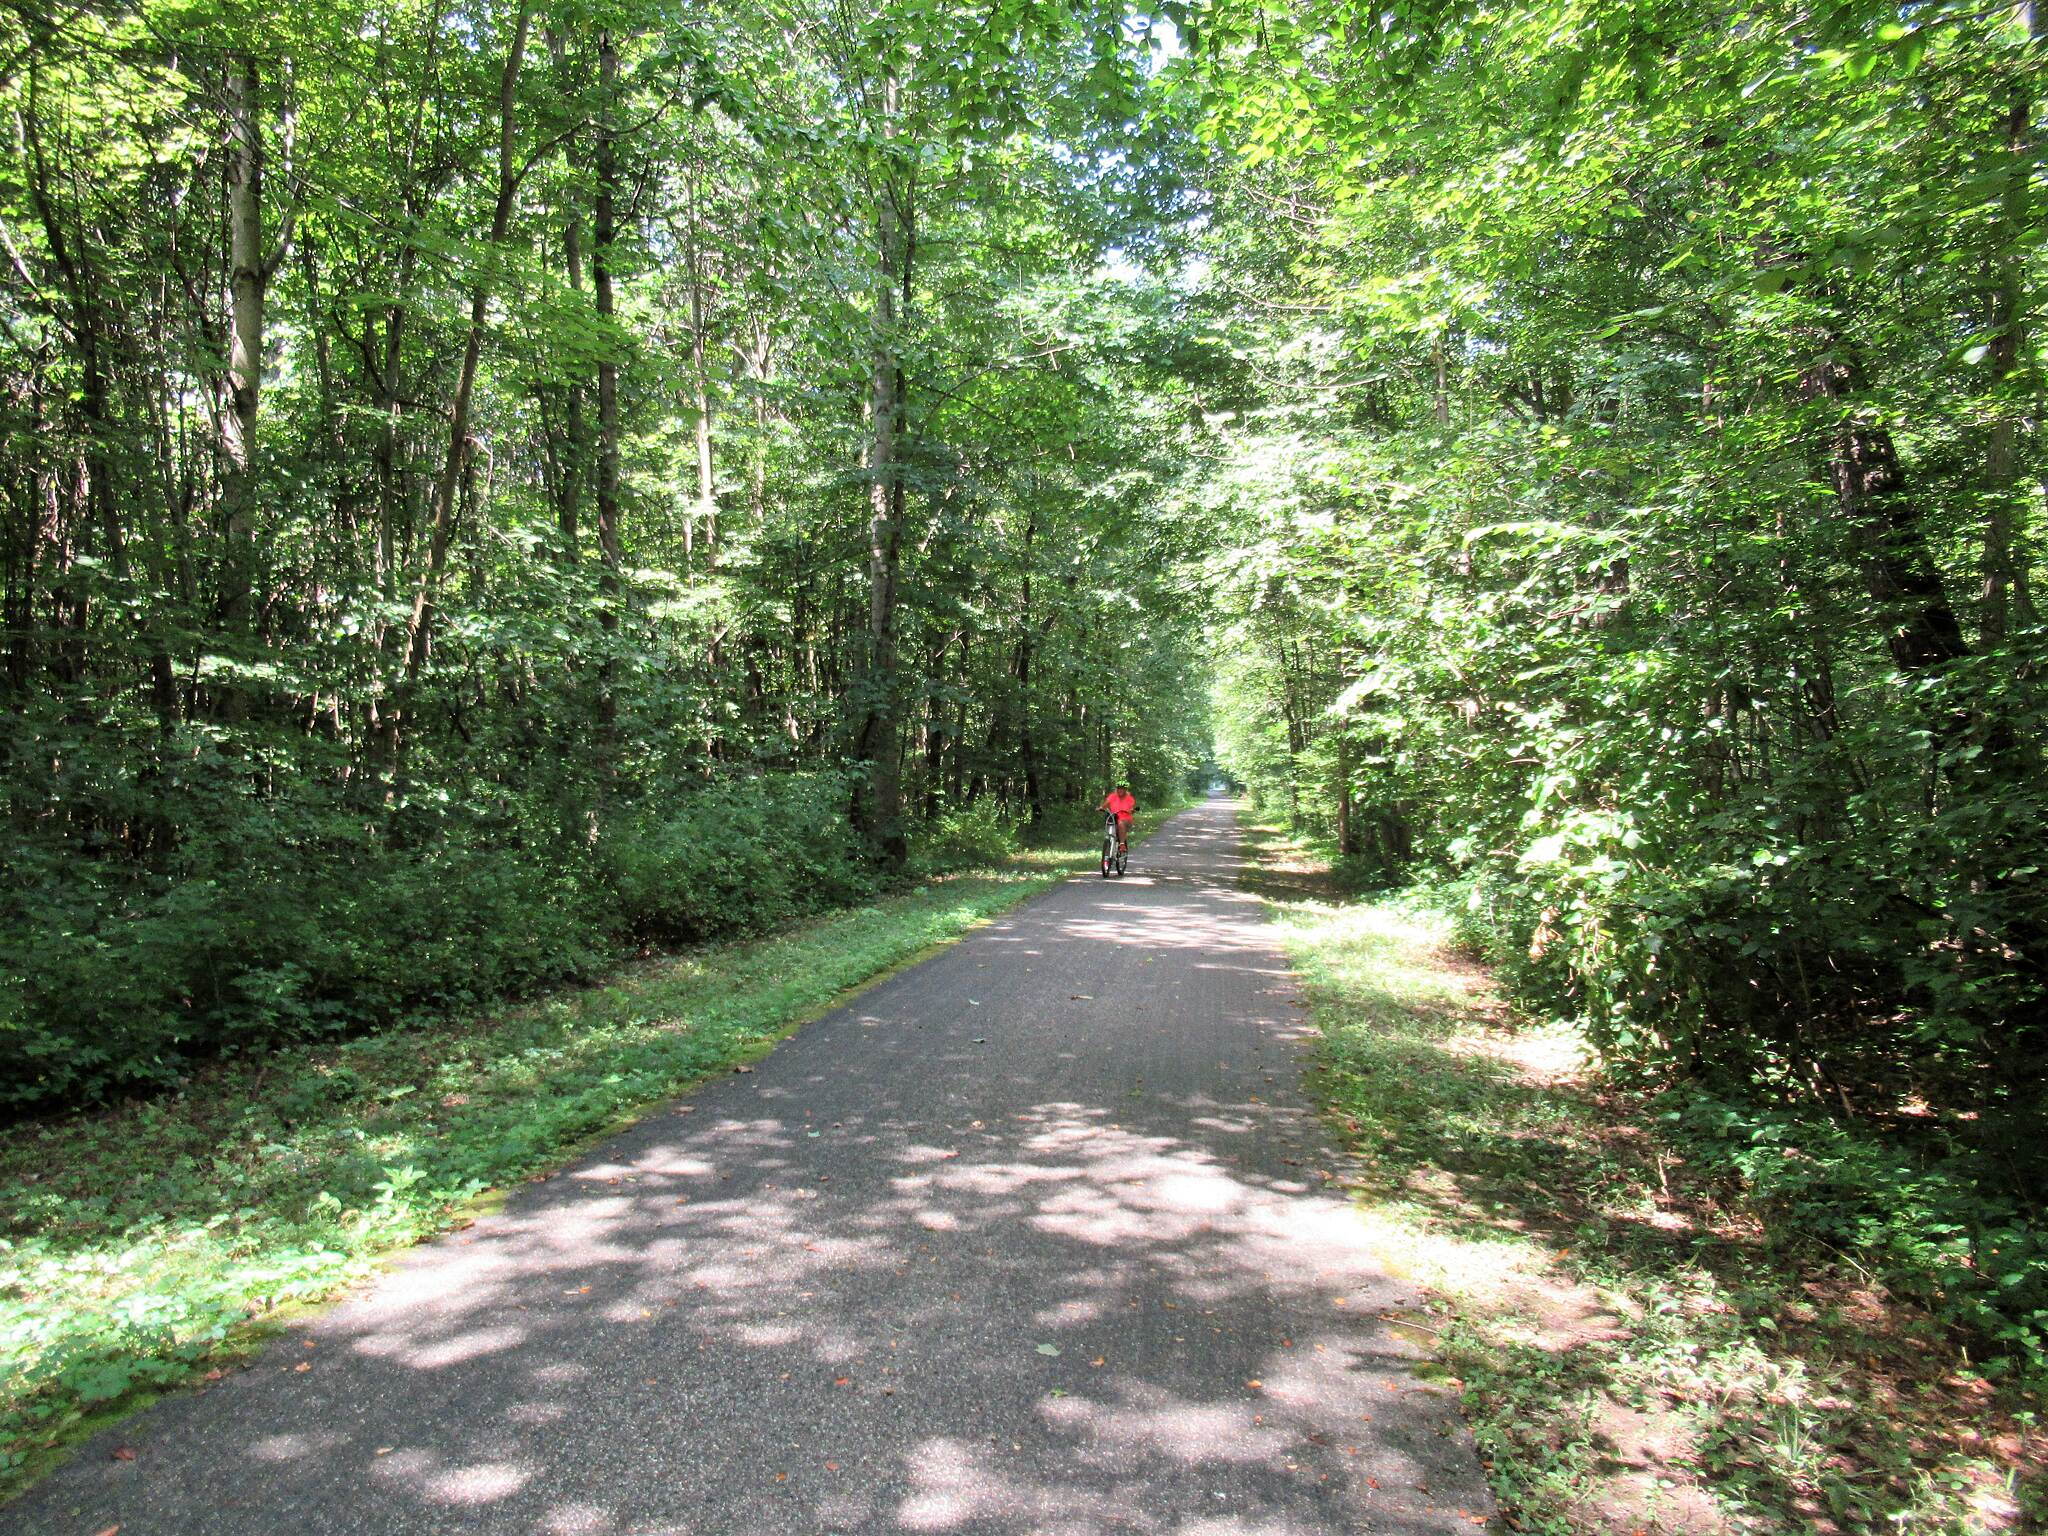 Western Reserve Greenway Well shaded area The trail is well shaded with lots of greenery. August, 2019.